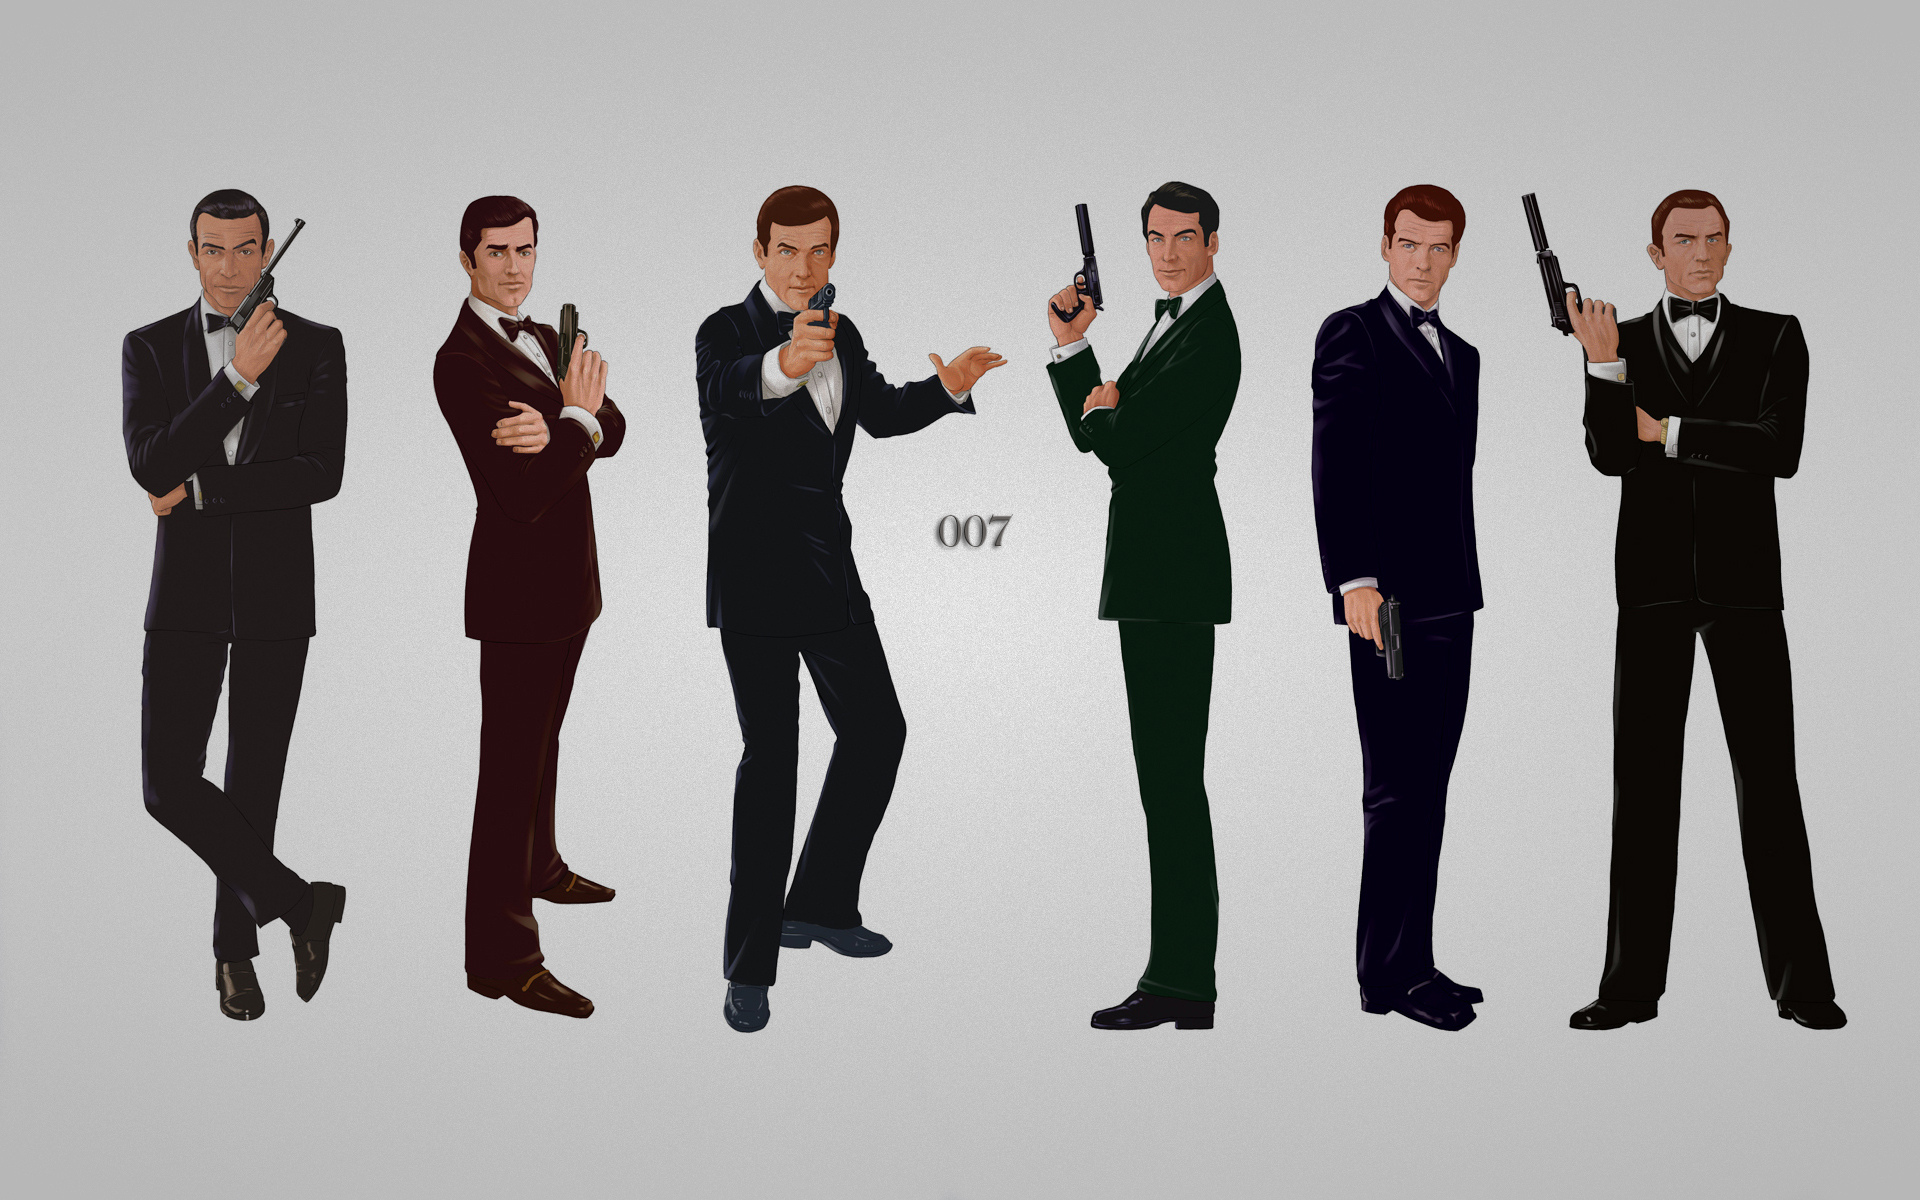 James Bond 007 weapons guns wallpaper 1920x1200 47121 1920x1200